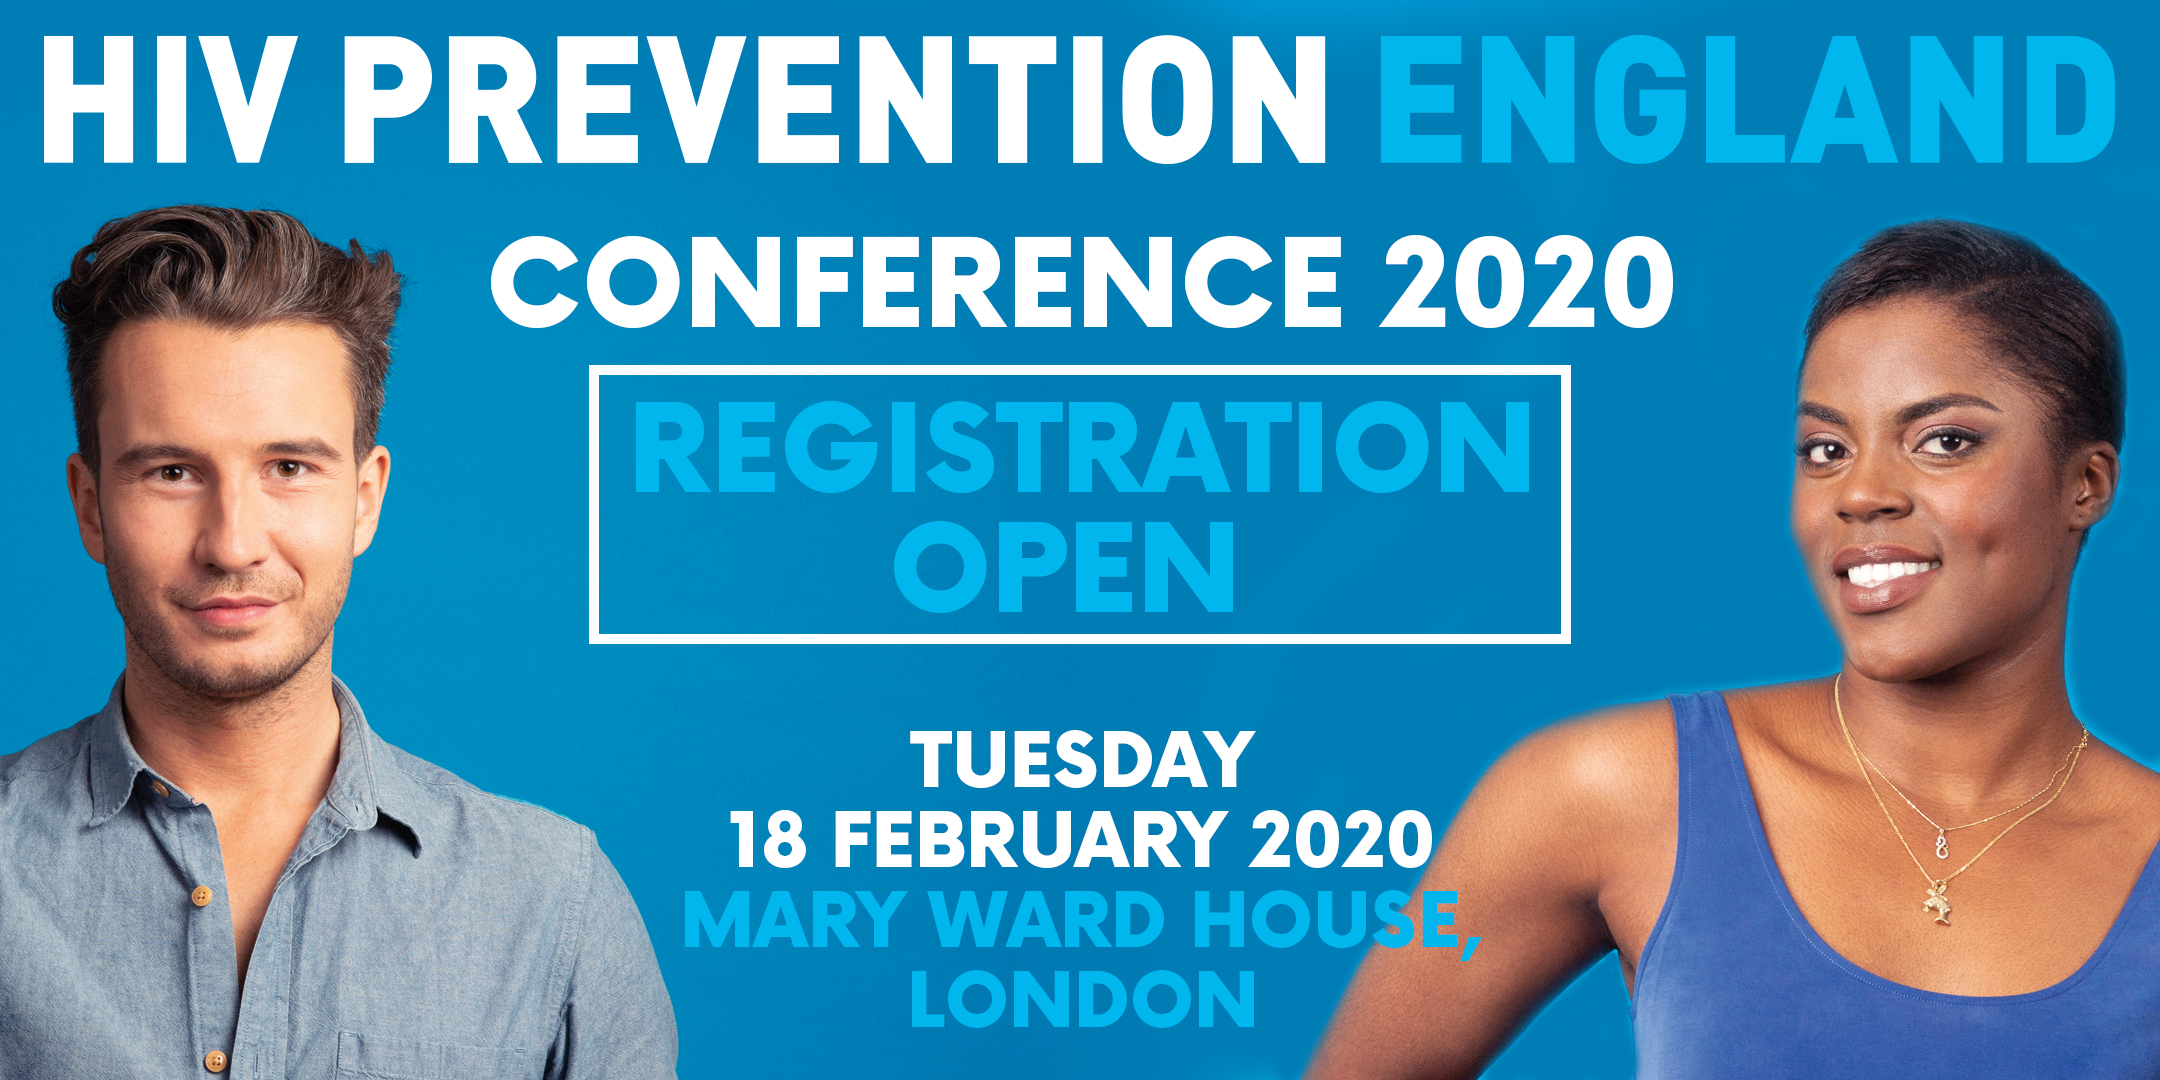 HPE Conference 2020 registration open - tuesday 18 february, mary ward house, london